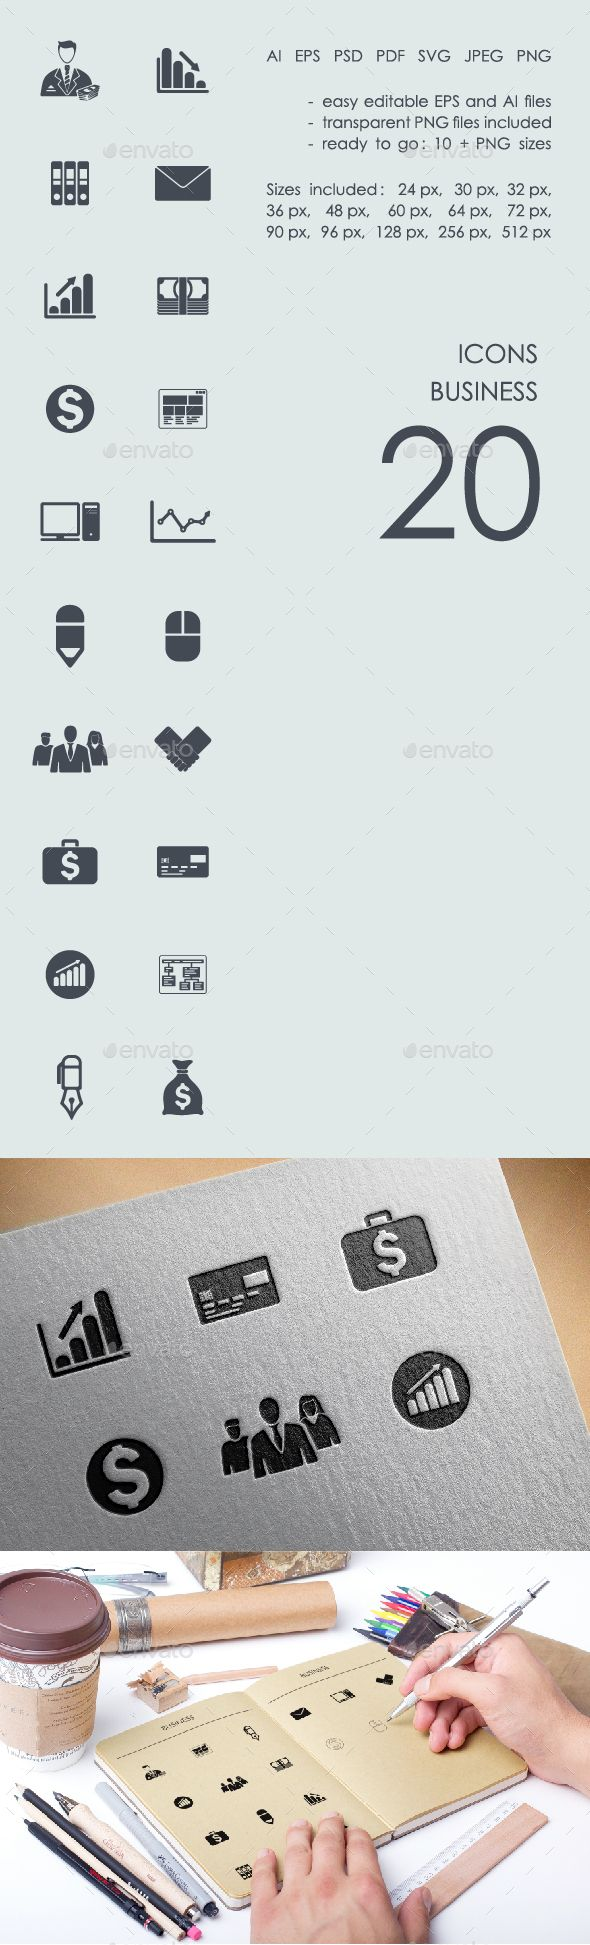 Business icons App template design, Android app design